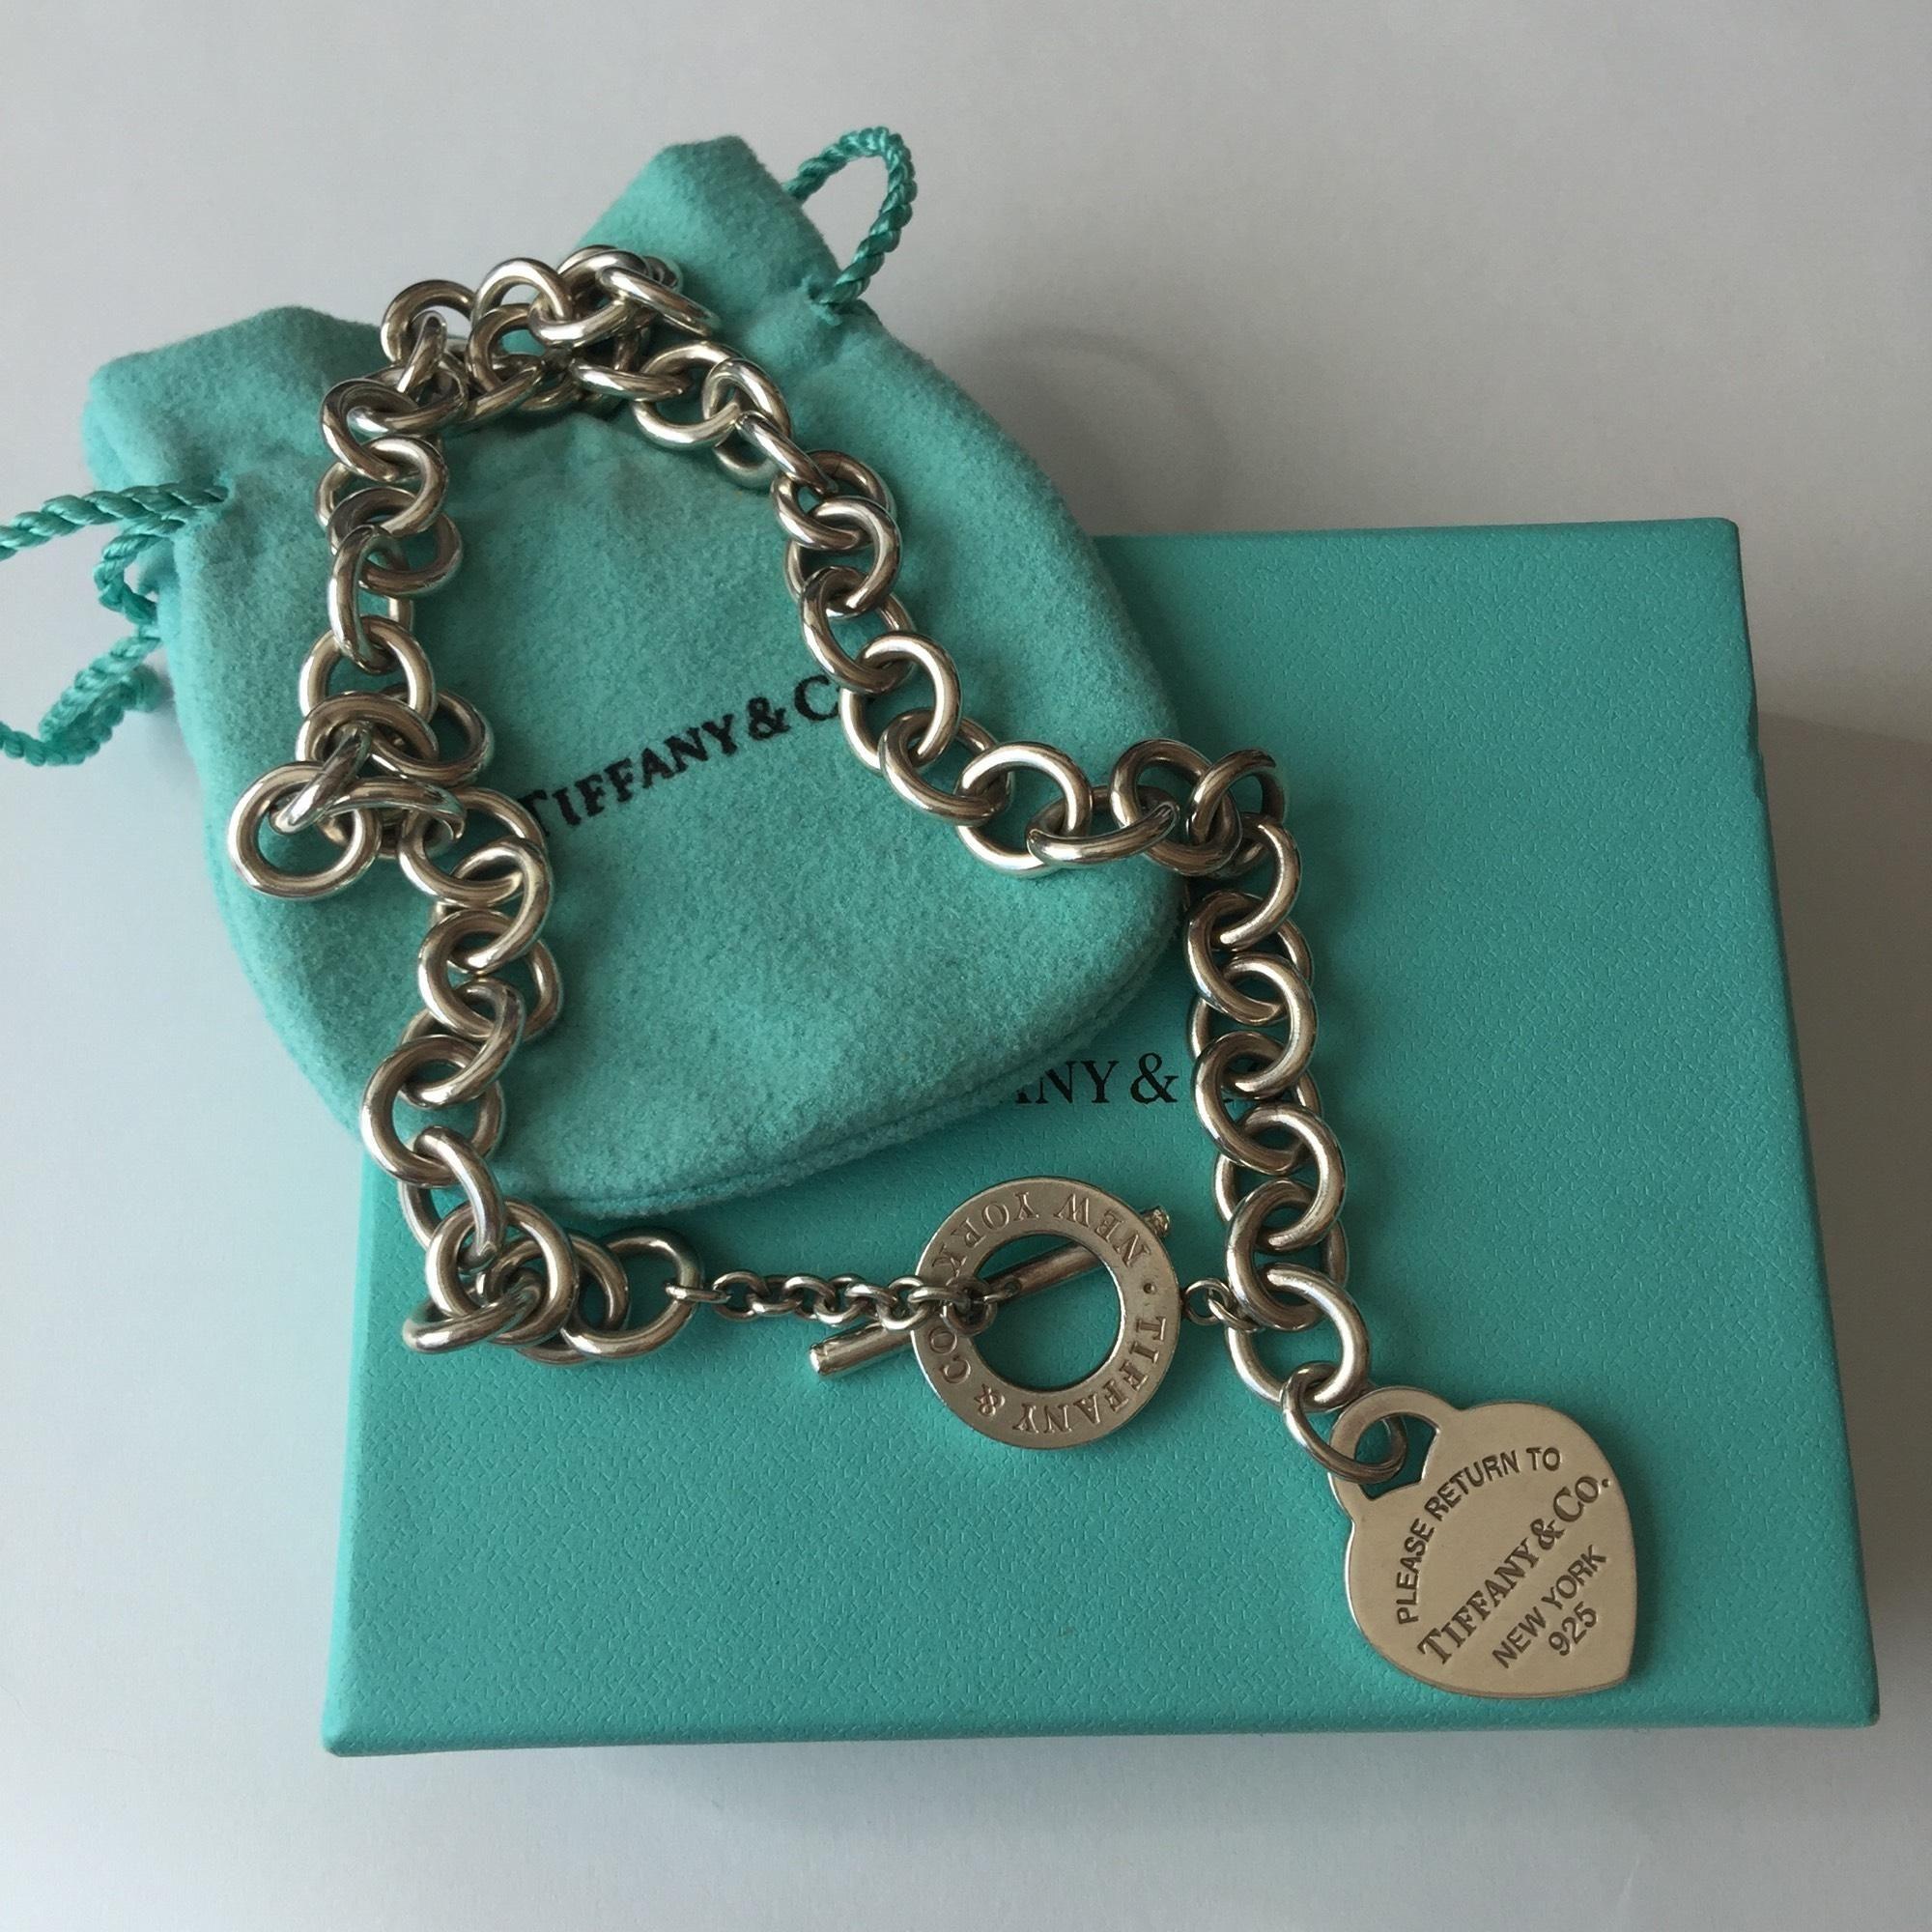 8d6d4020a Free shipping and guaranteed authenticity on NEW VERSION MODEL Return to  Tiffany & Co Silver Toggle Heart Tag Necklace FULL PACKAGING! at Tradesy.